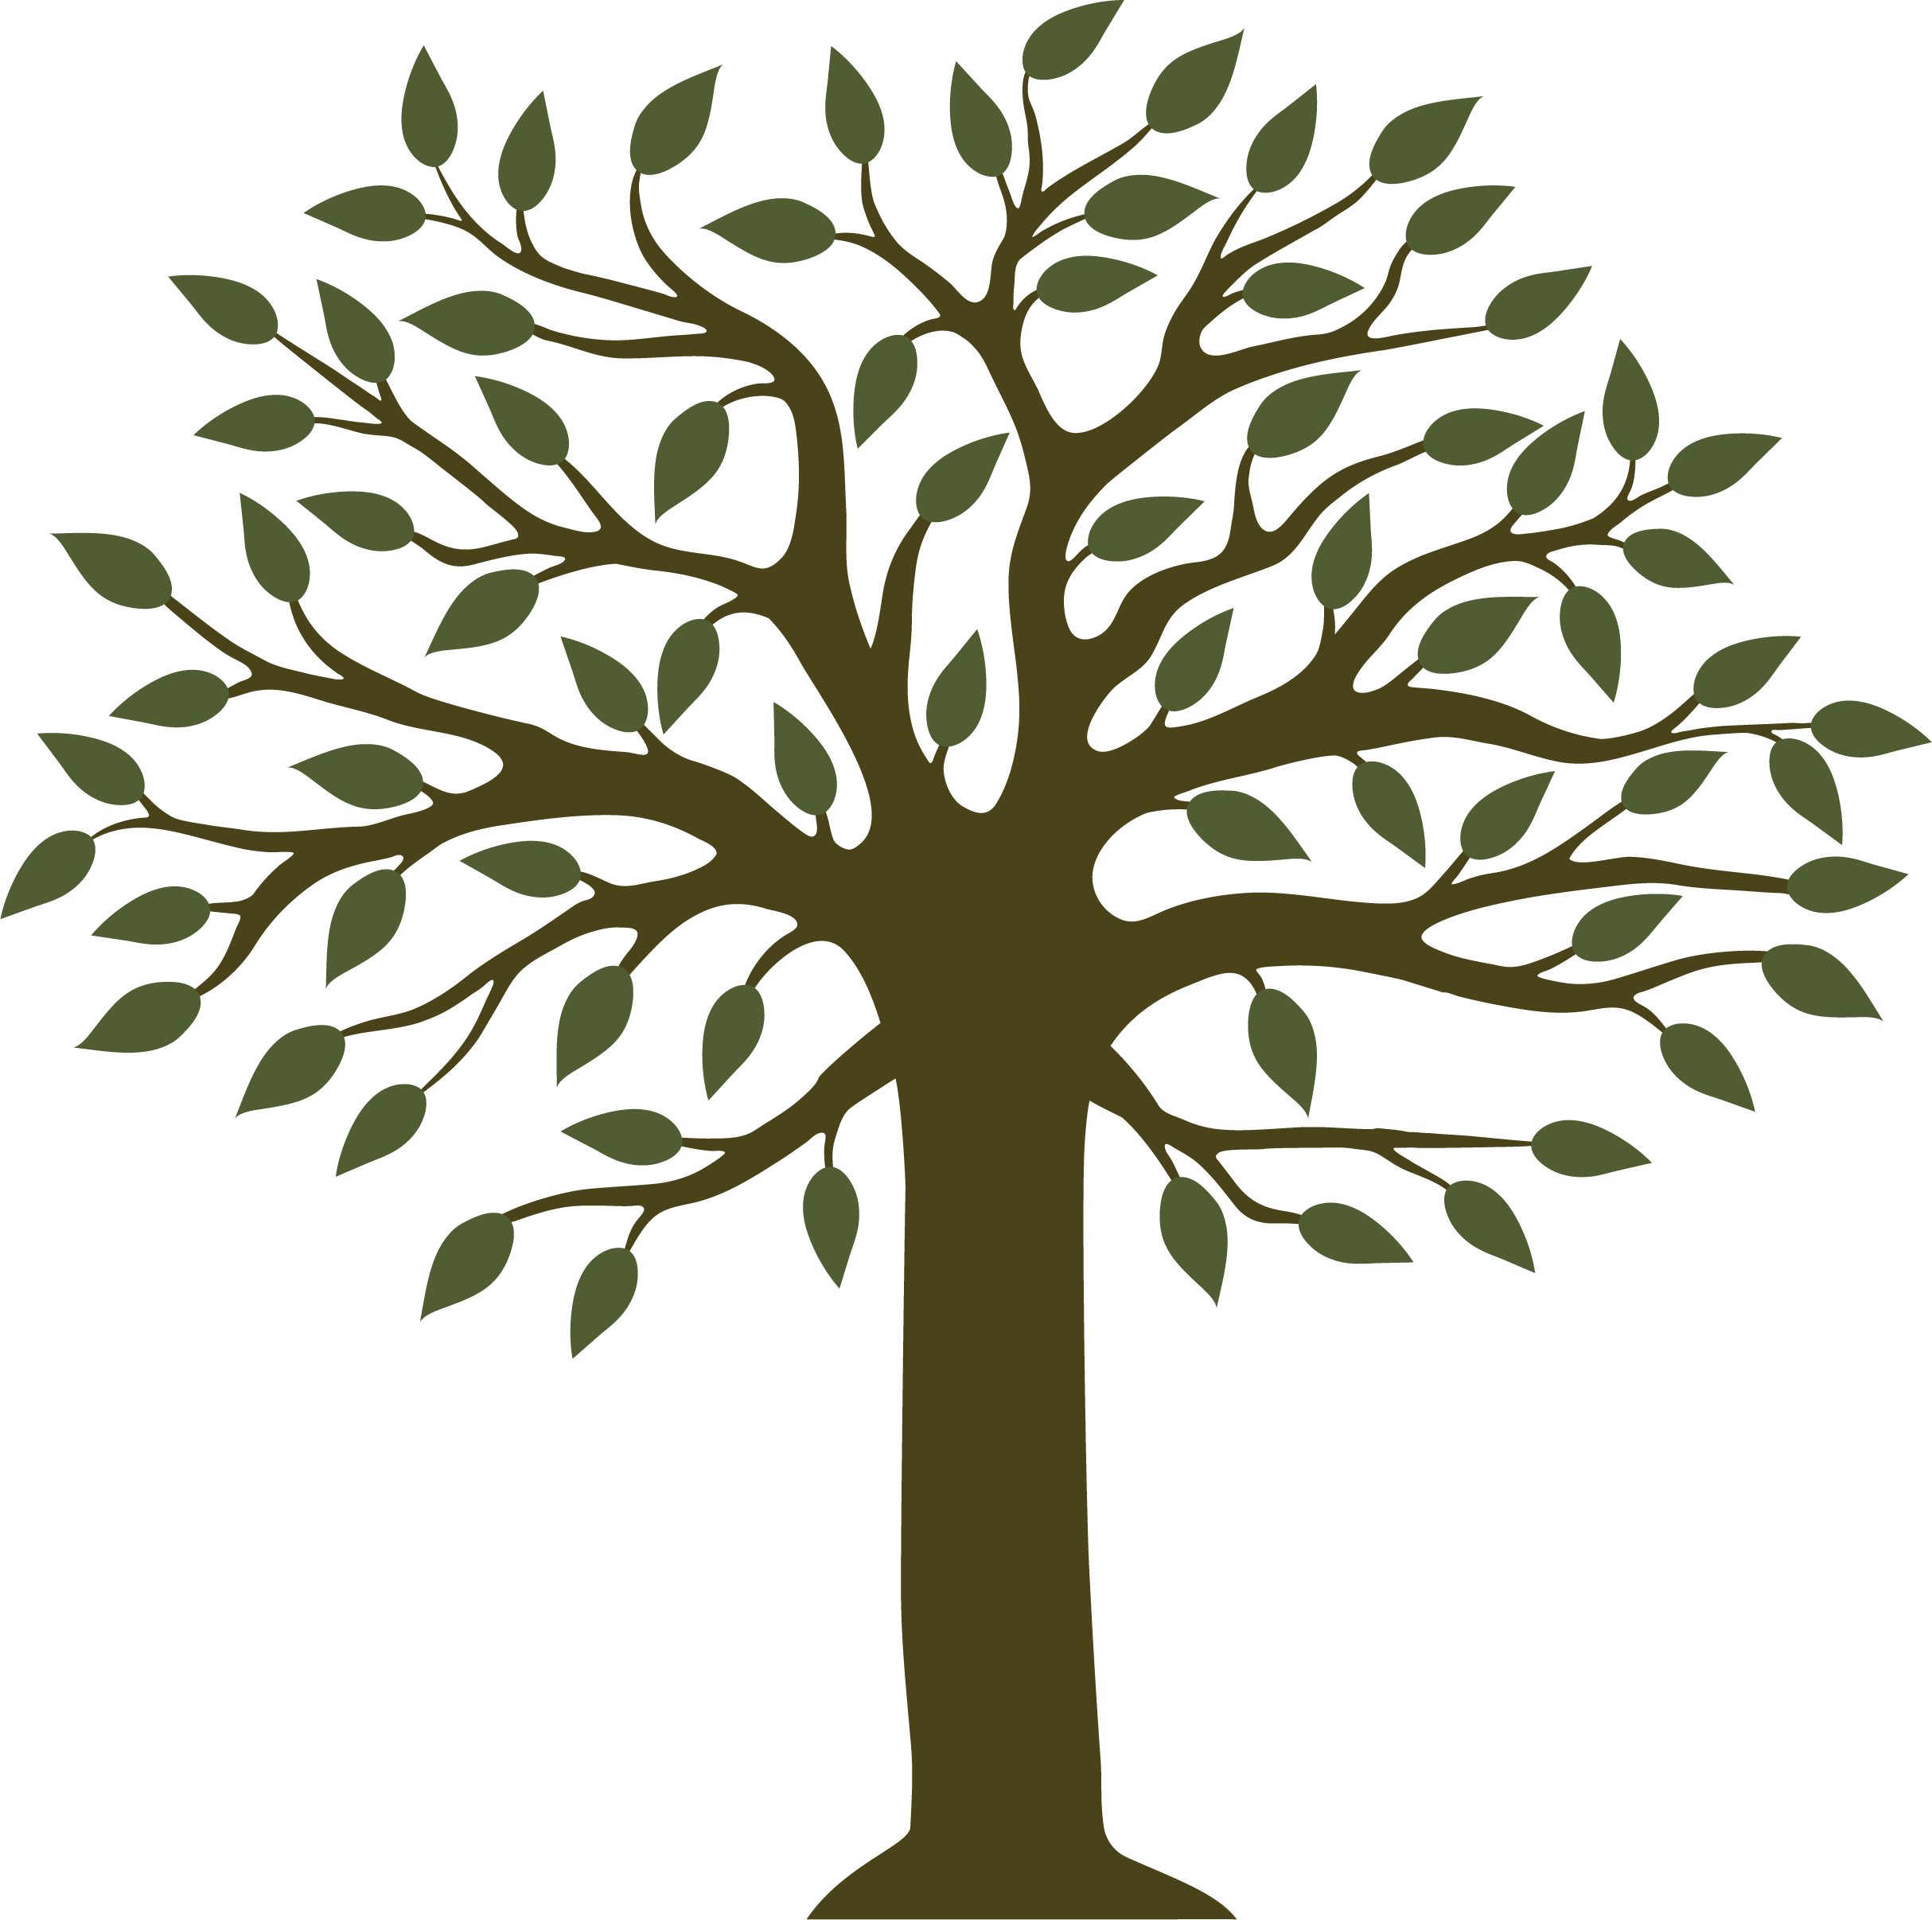 Learning tree clipart vector library library Learning Tree - Image Home Garden and Tree Rtecx.Com vector library library